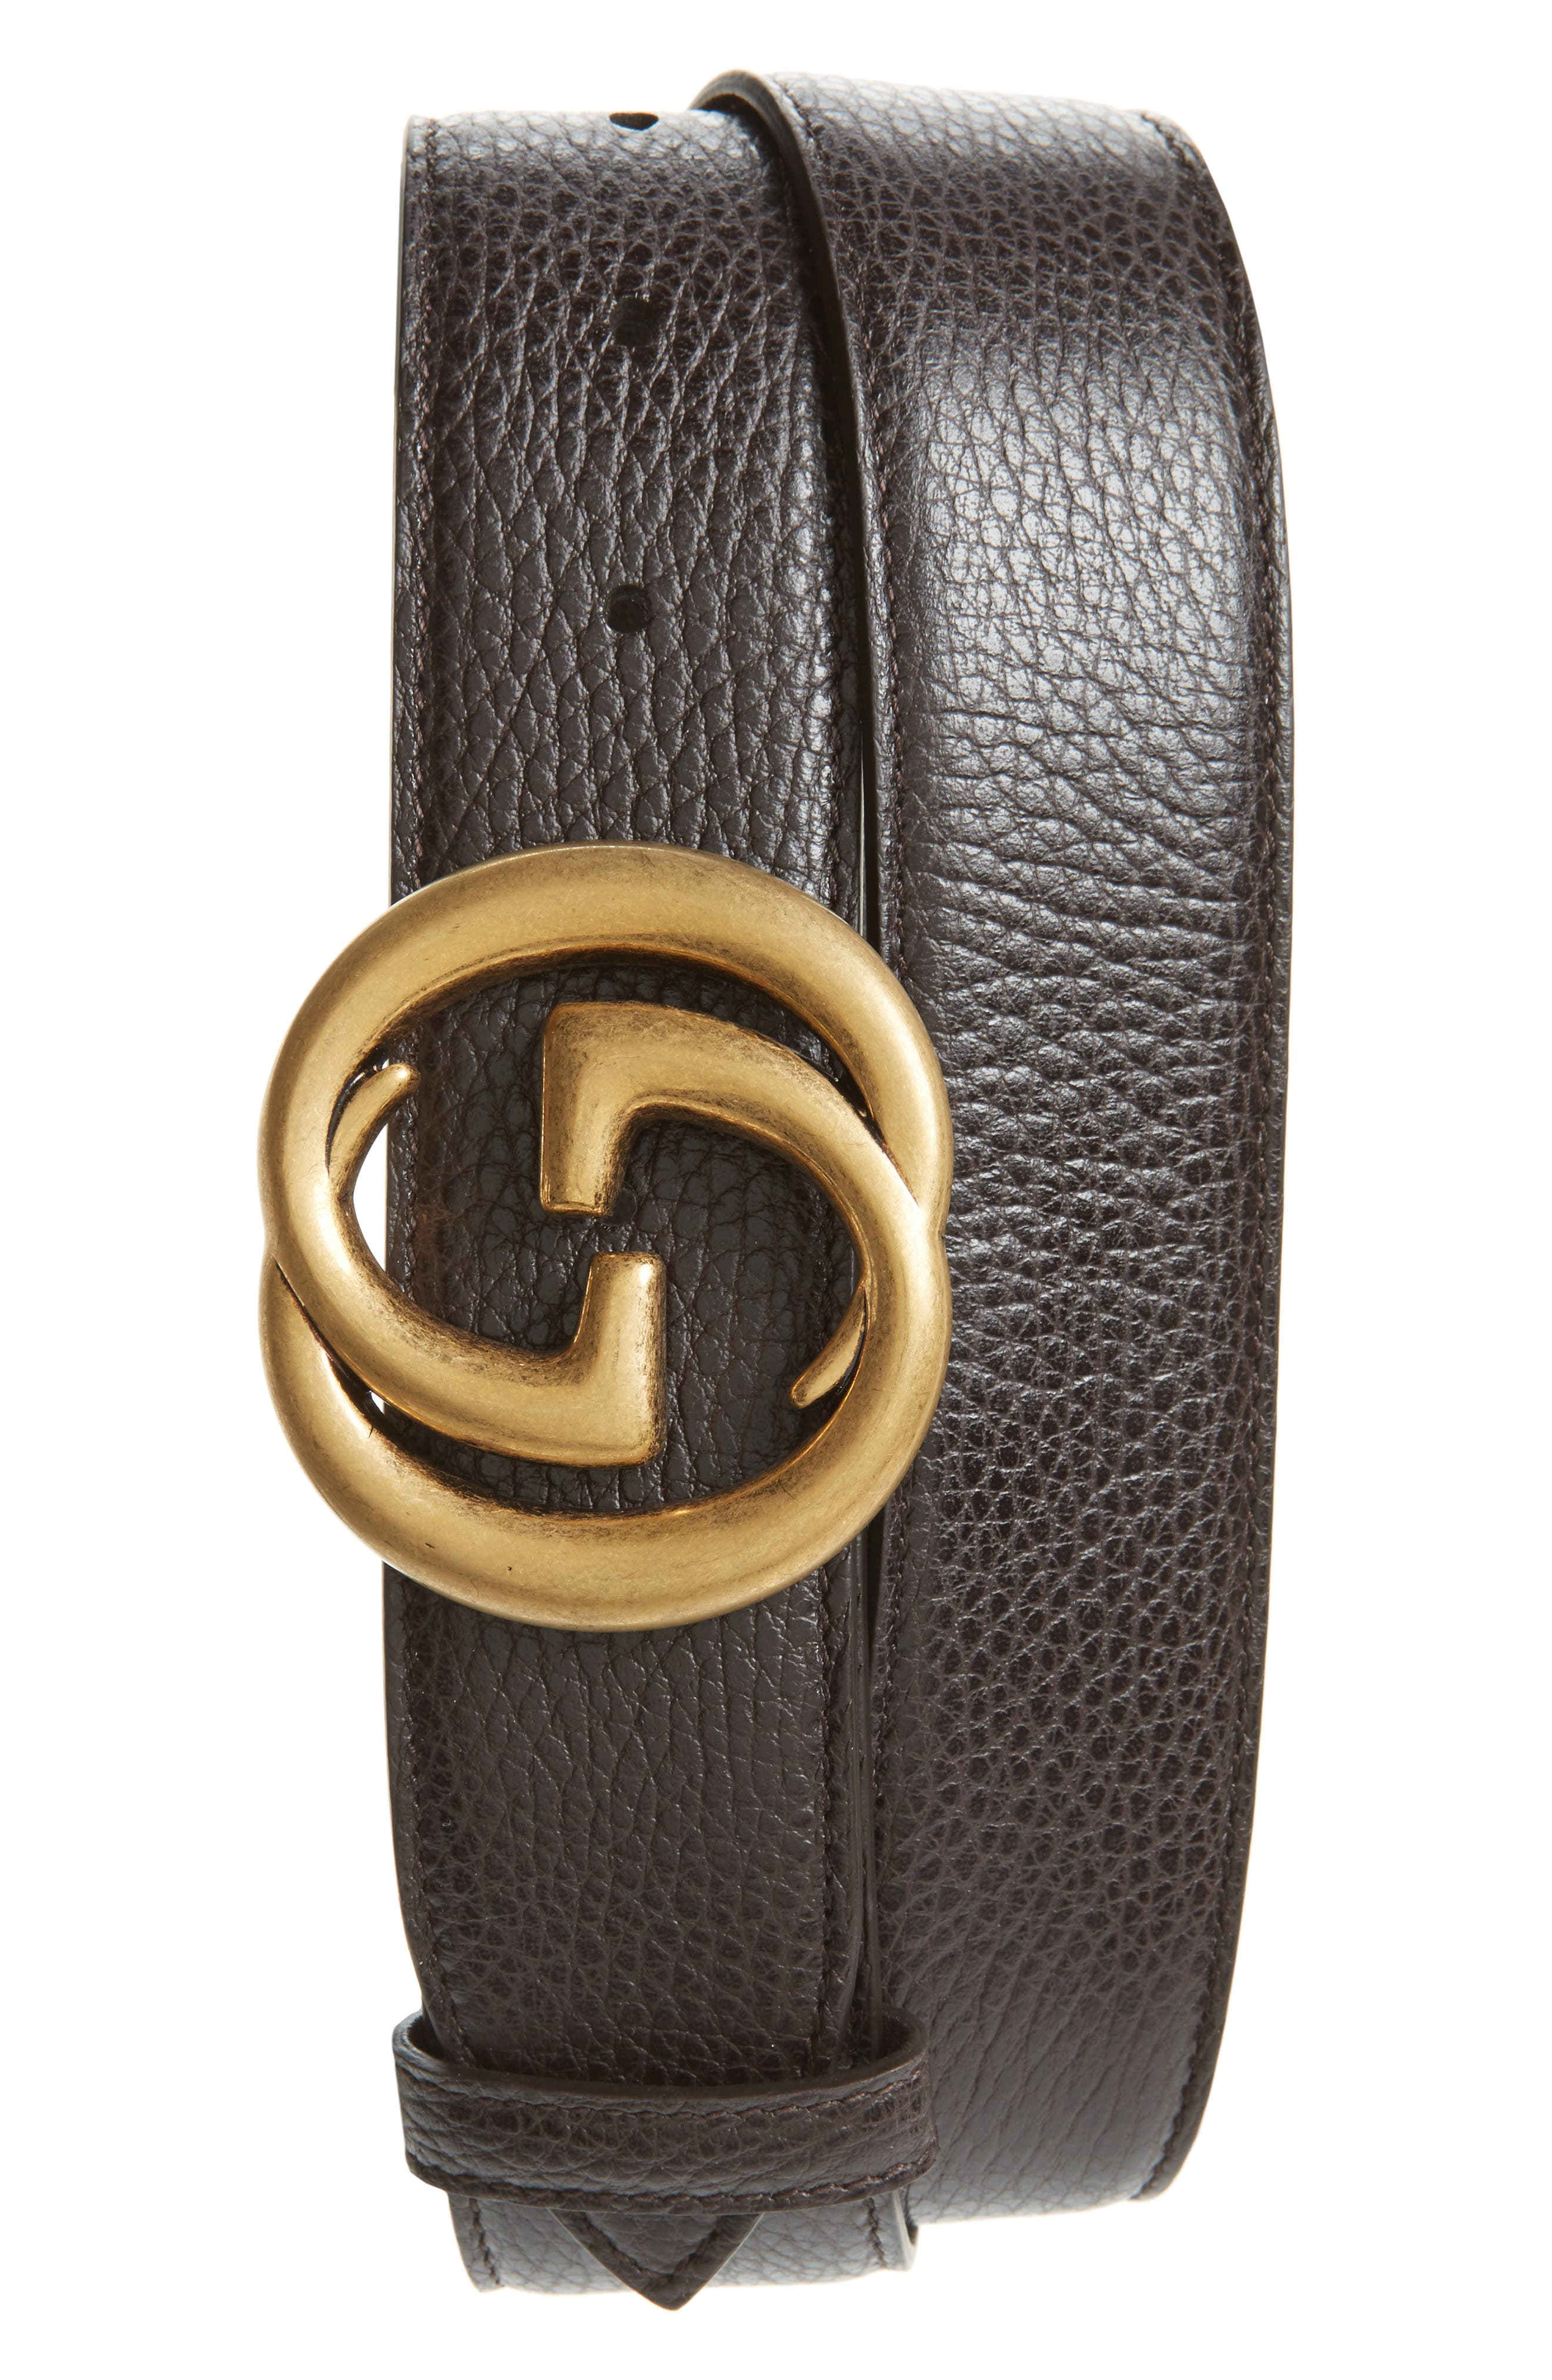 Interlocking-G Calfskin Leather Belt,                             Main thumbnail 1, color,                             Cocoa